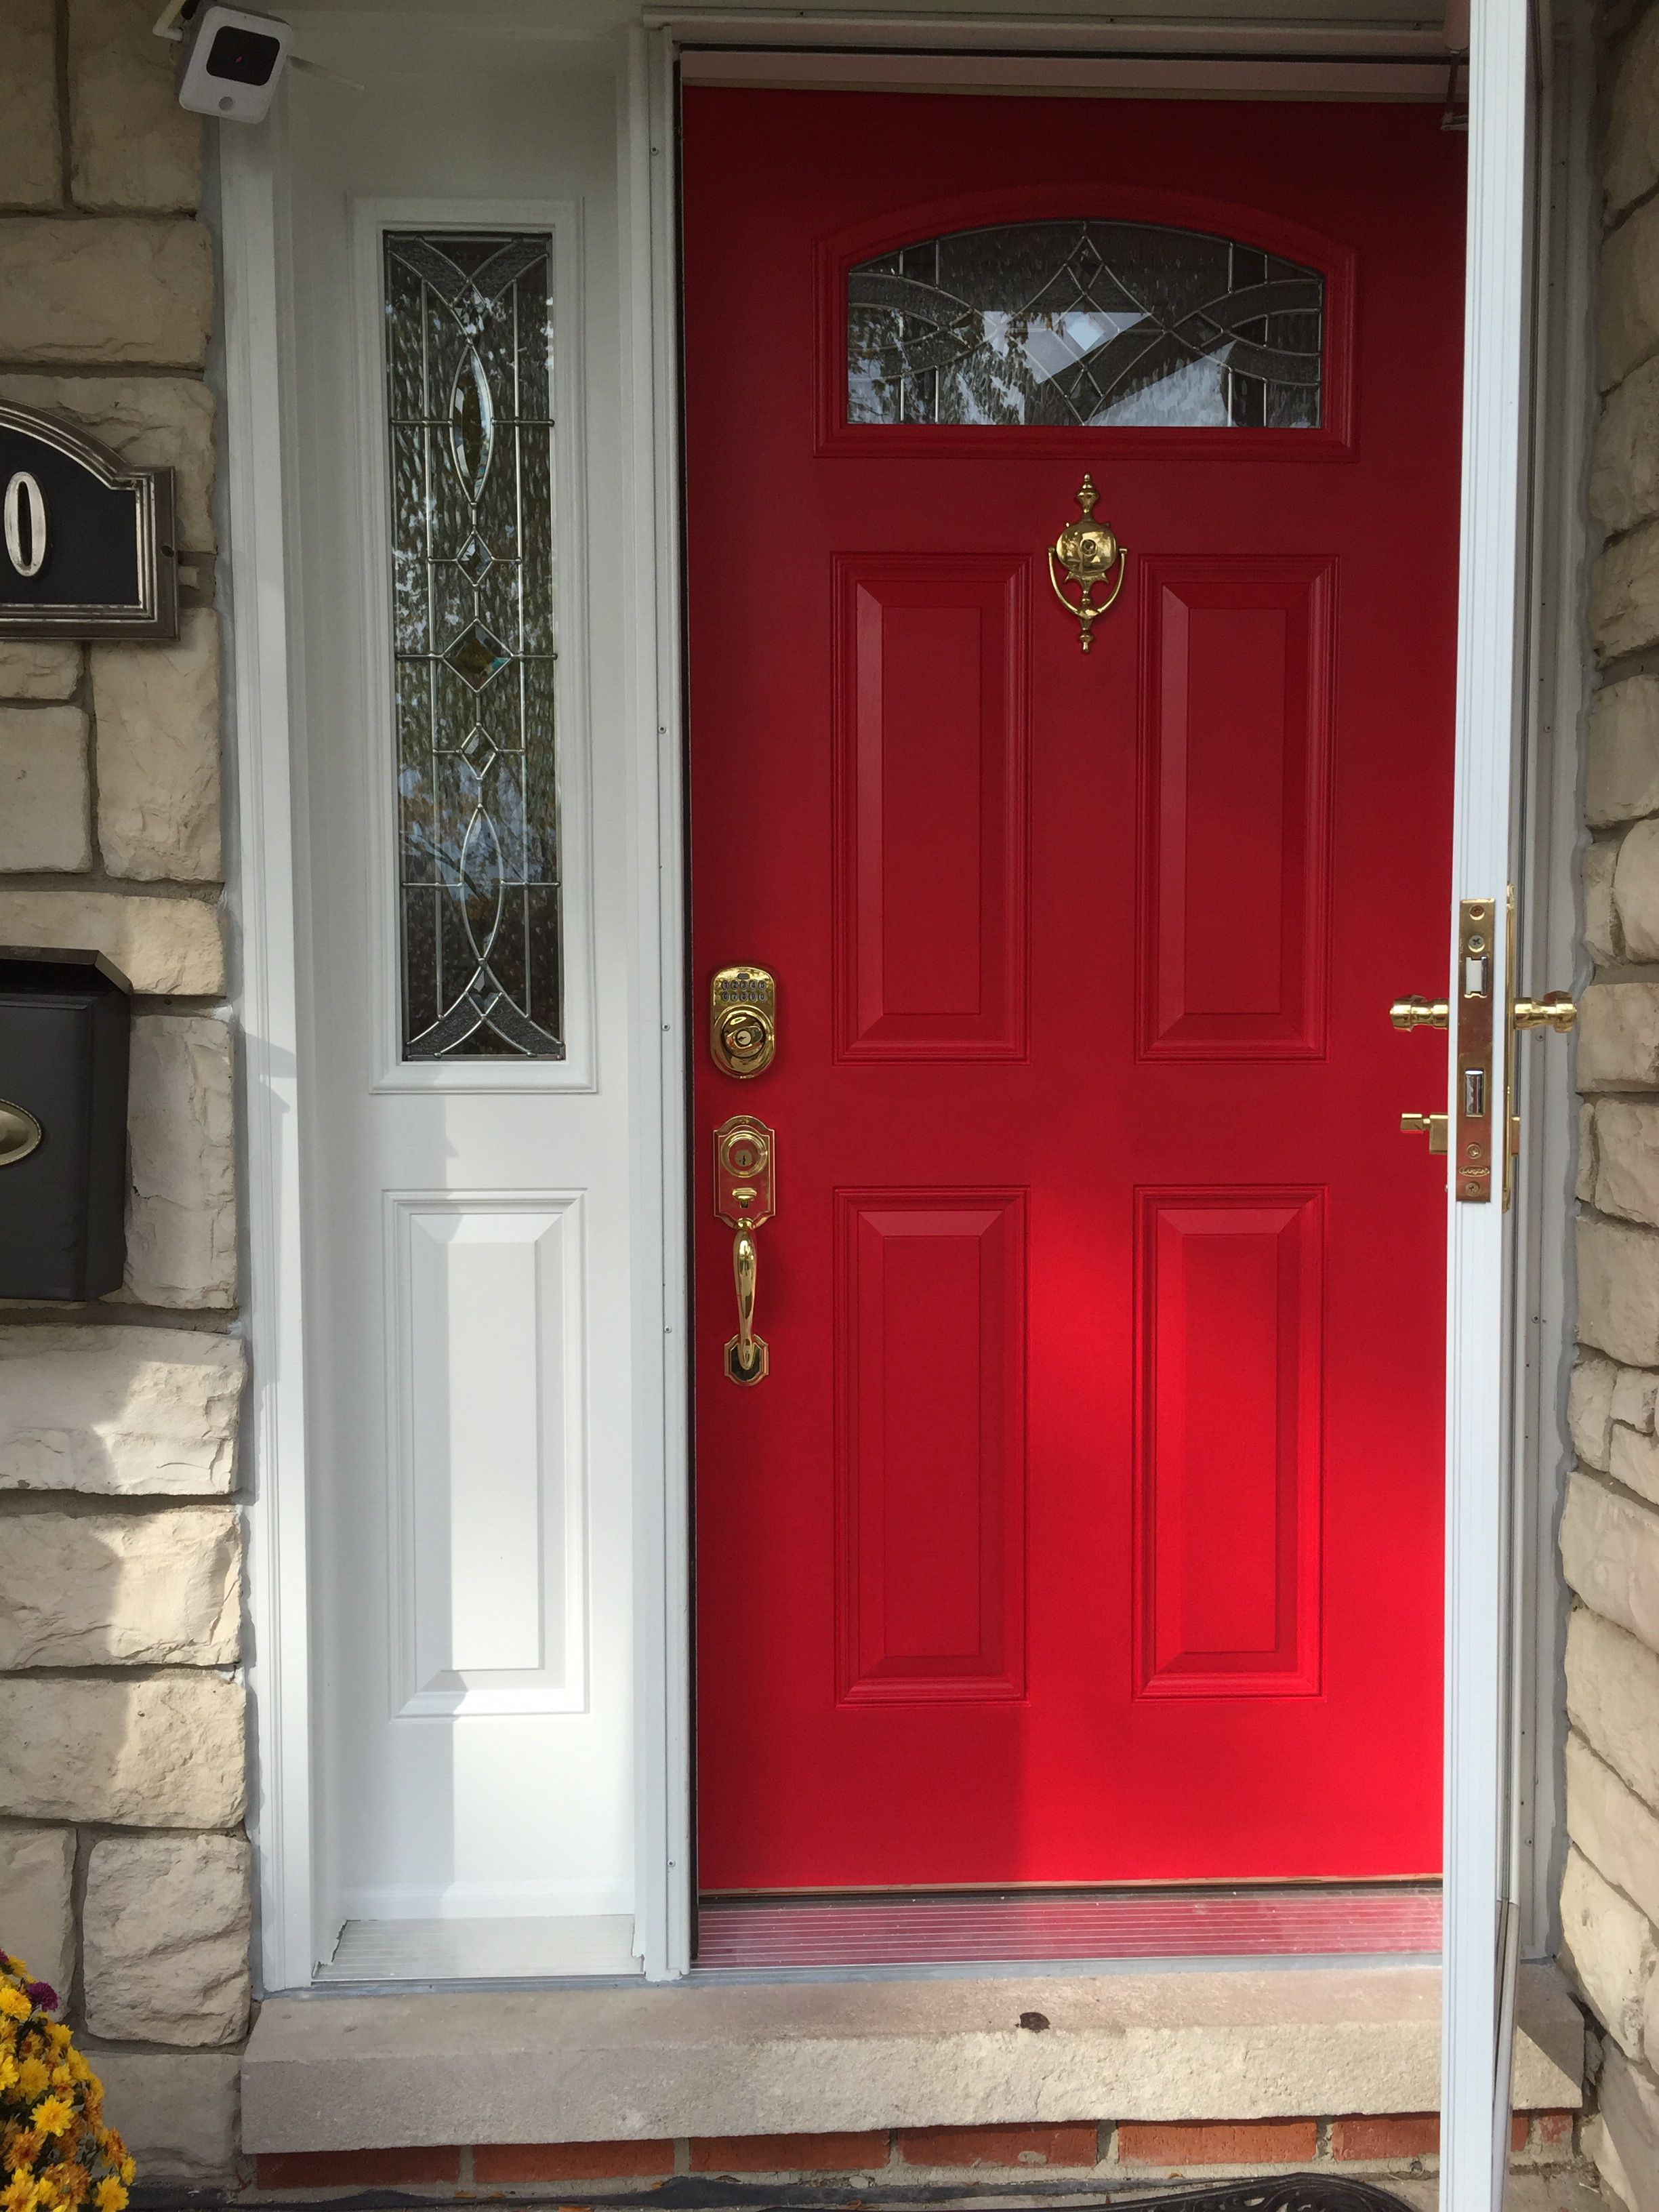 Perfect Red Door I Used Sherwin Williams In Heartthrob And M Love With My New Reddoor Sherwinwilliams